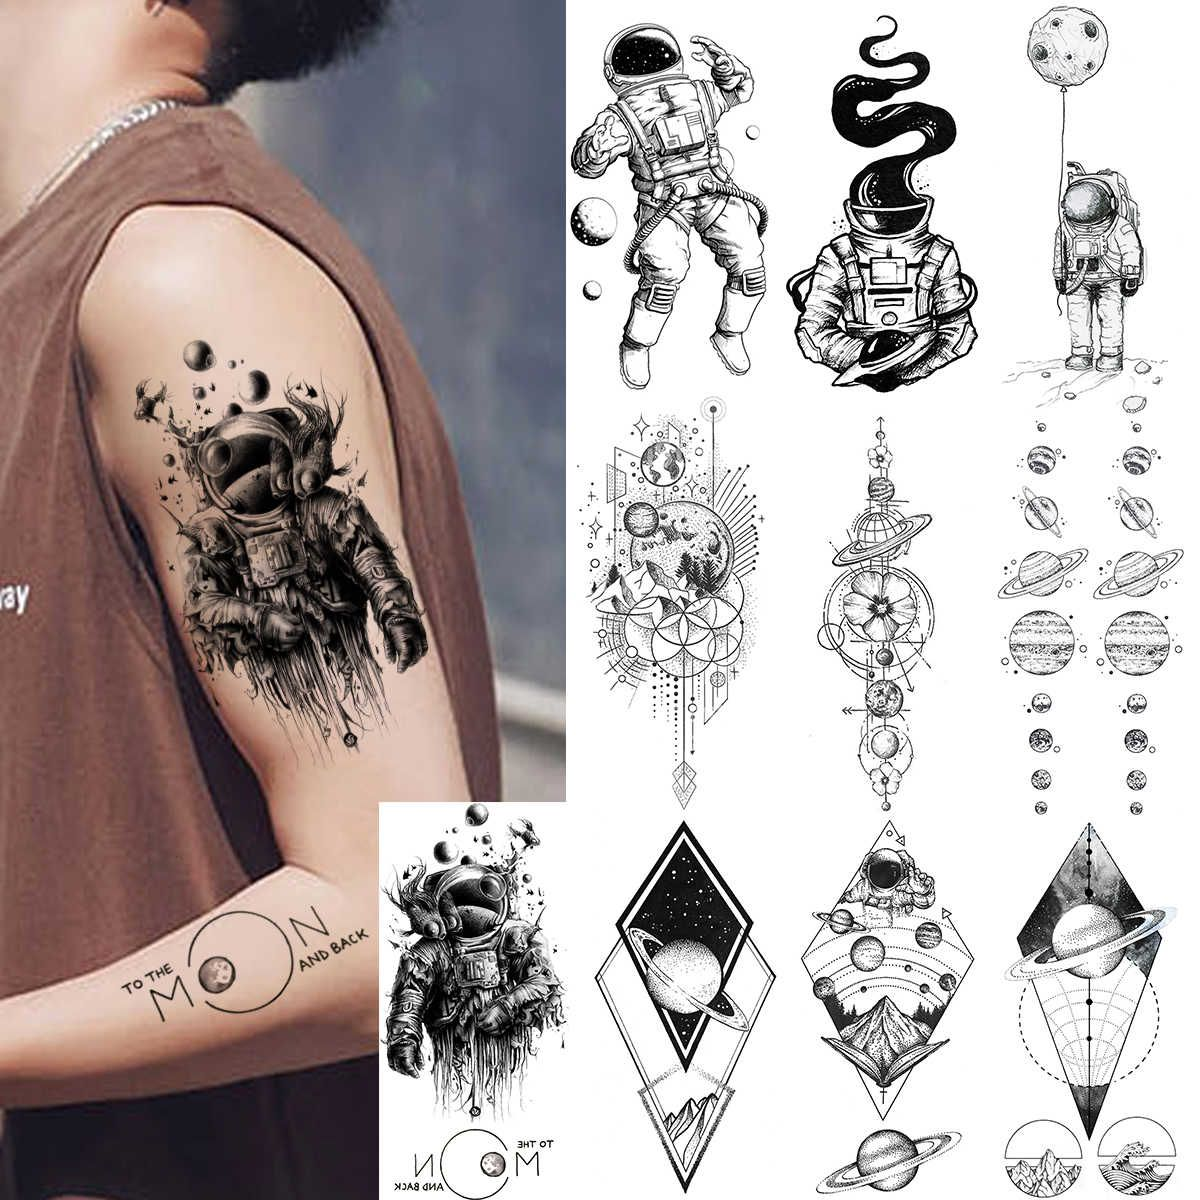 Waterproof Realistic Men Women Fake Tattoos Temporary Cosmonaut Planets Tattoo Sticker Universe Earth Astronaut Body Art Tatoos Temporary Tattoos Aliexpres In 2020 Planet Tattoos Tattoos For Guys Fake Tattoos